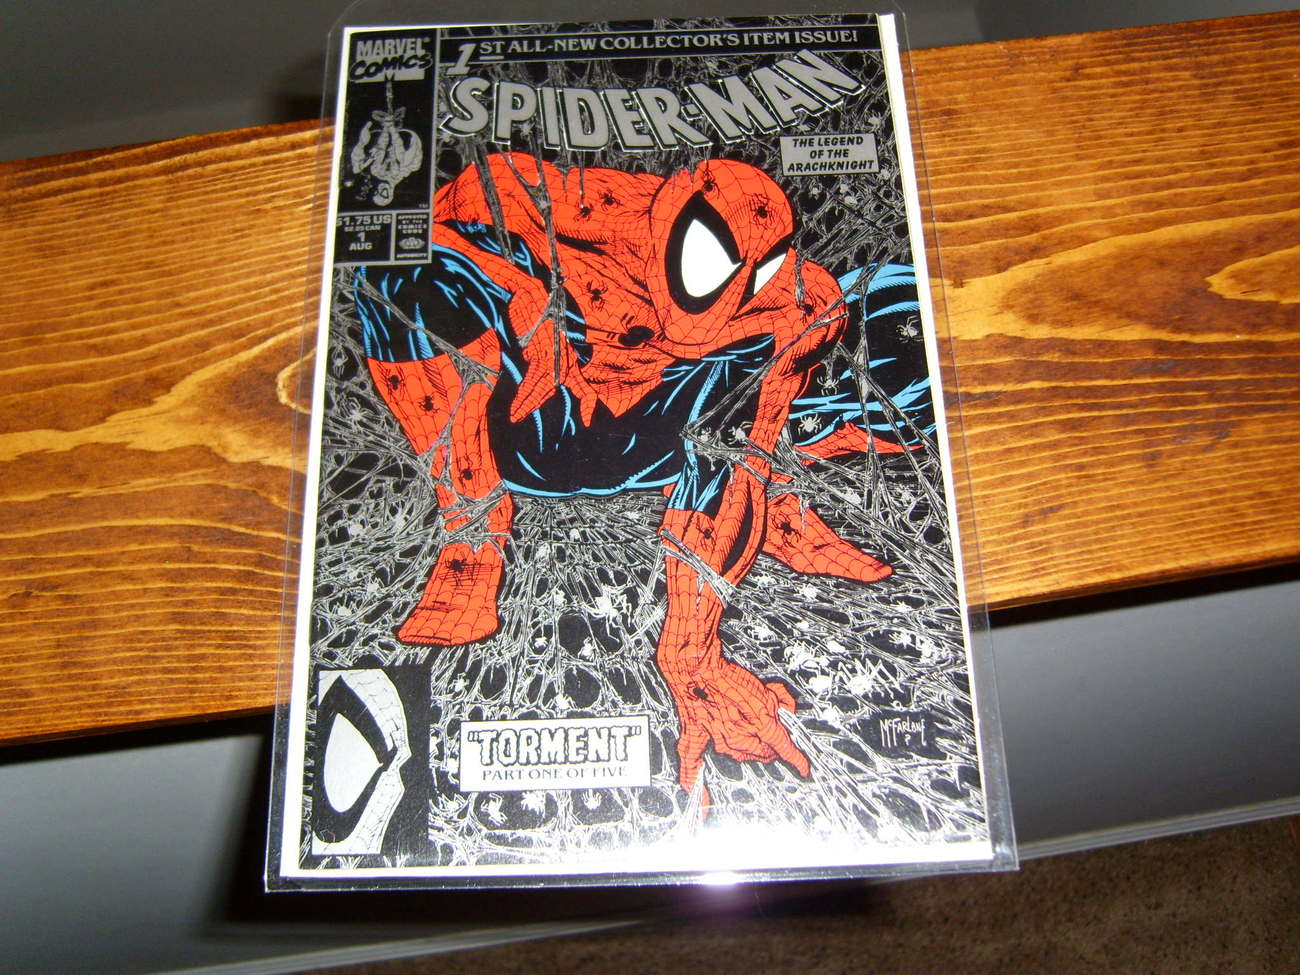 Primary image for Spiderman comic Legend of the Arachknight Torment V1 McFarlane cover?